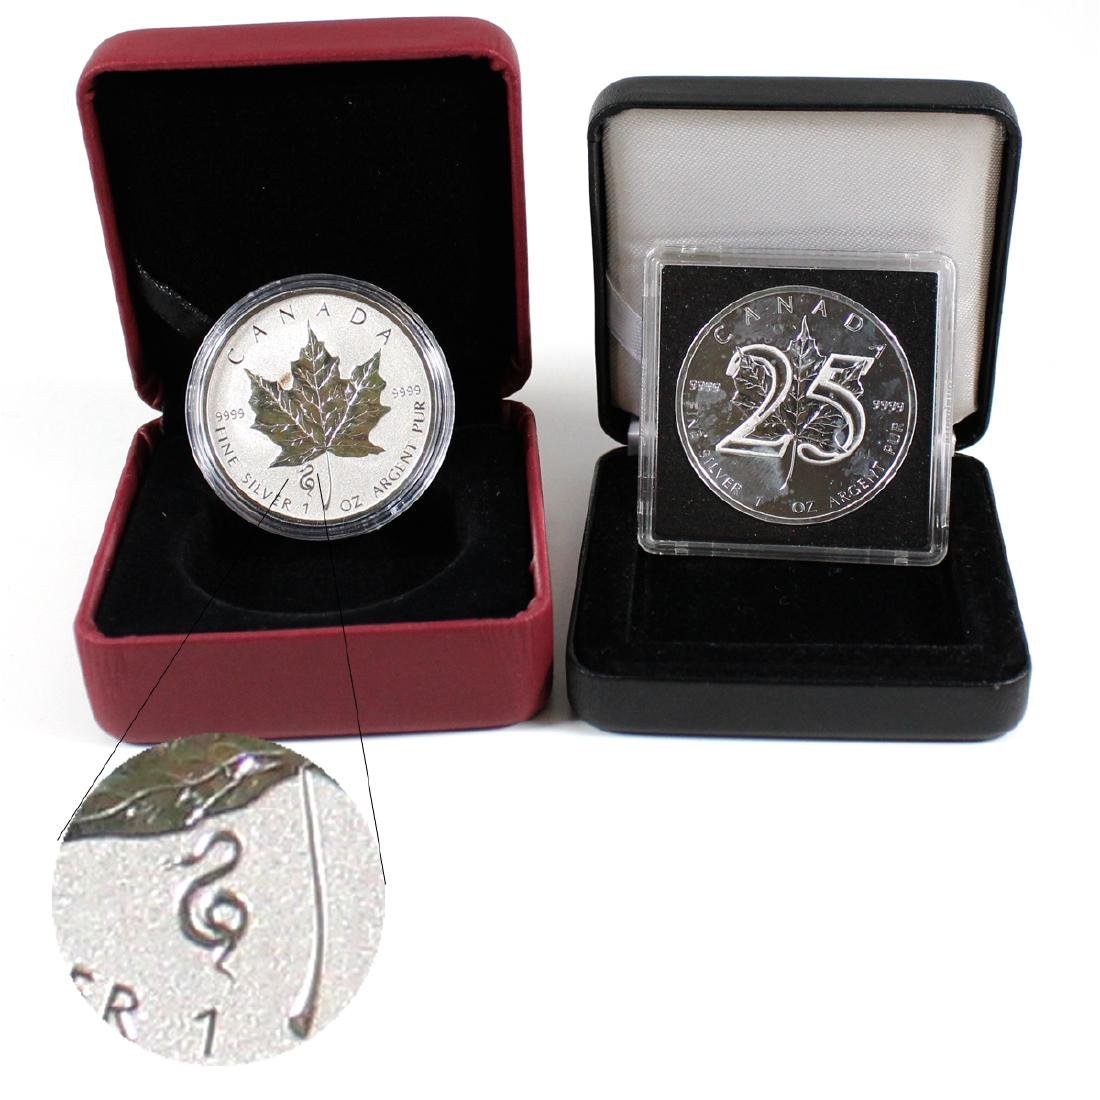 2013 25th Anniversary & 2013 Snake Privy 1oz Silver